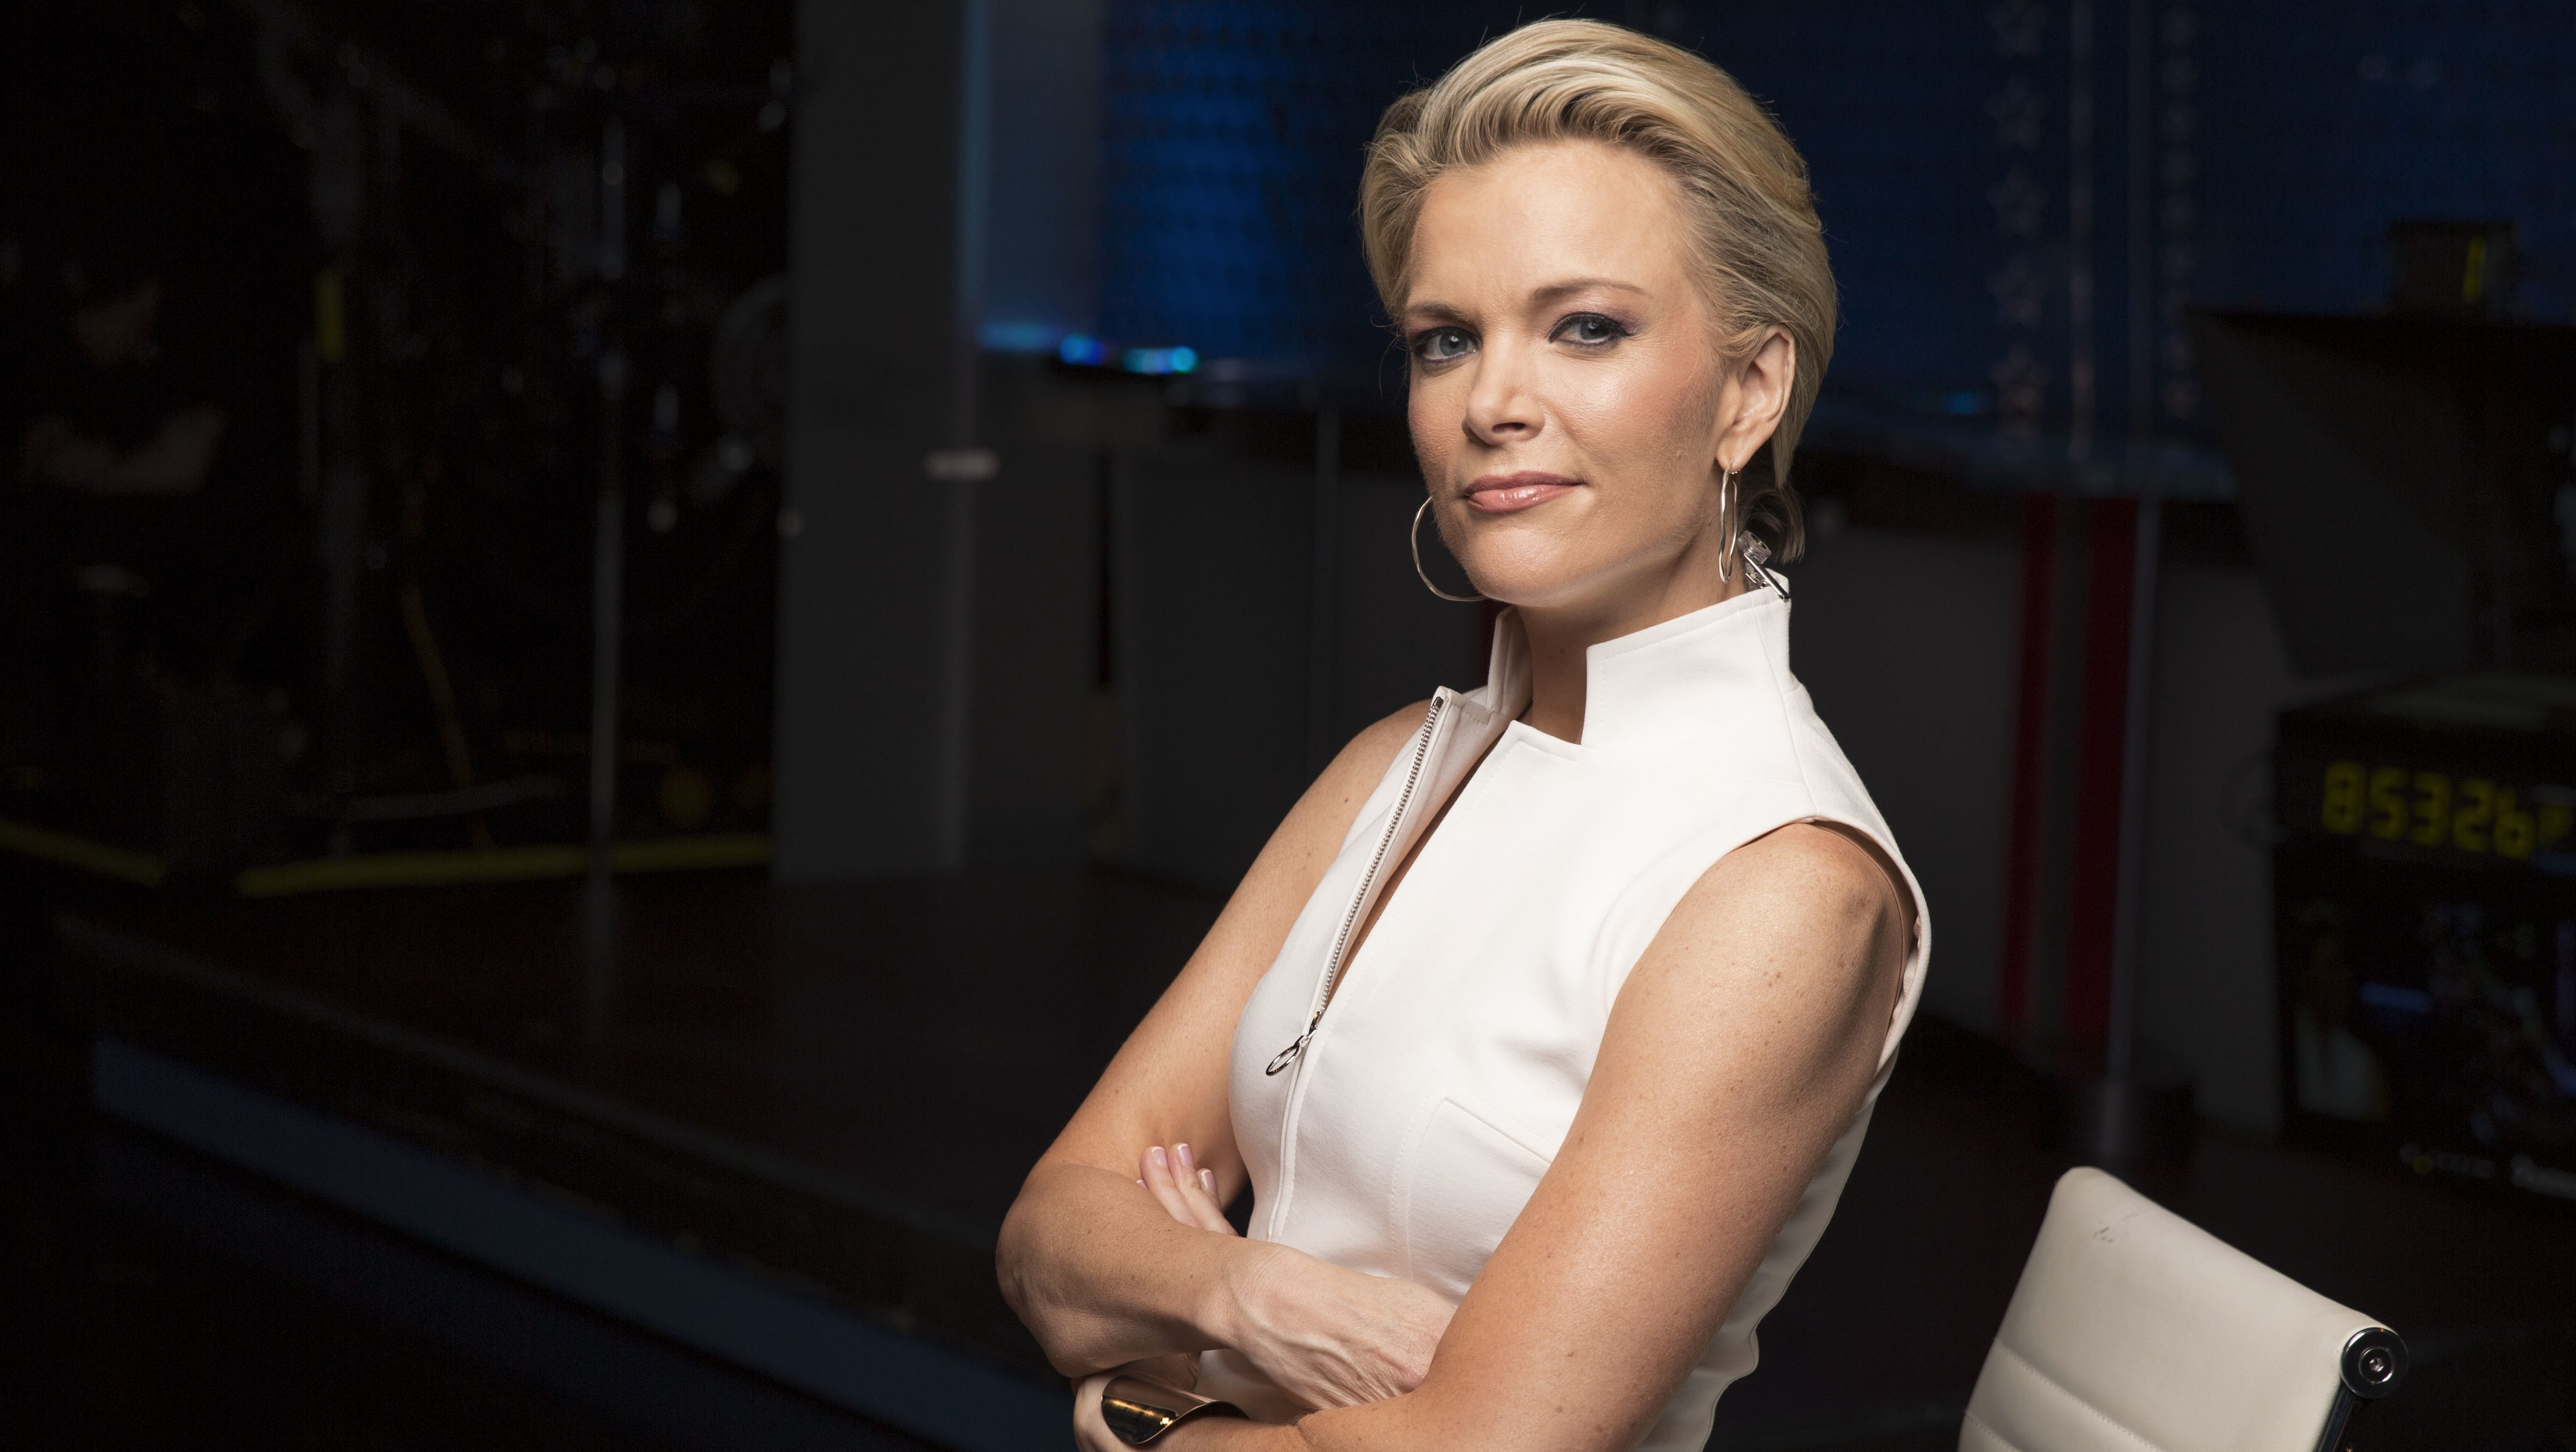 "In this May 5, 2016 file photo, Megyn Kelly poses for a portrait in New York. Kelly is calling on President-elect Donald Trump's social media director to stop encouraging hostile elements among some of his supporters. London-based newspaper, The Guardian, reports that the Fox News anchor told an audience at a speaking event in Washington Monday, Dec. 5, 2016, that there's a small group of Trump supporters ""that really enjoys nastiness and threats."" She said Dan Scavino's job during the campaign was ""to stir these people up and that man needs to stop doing that."""